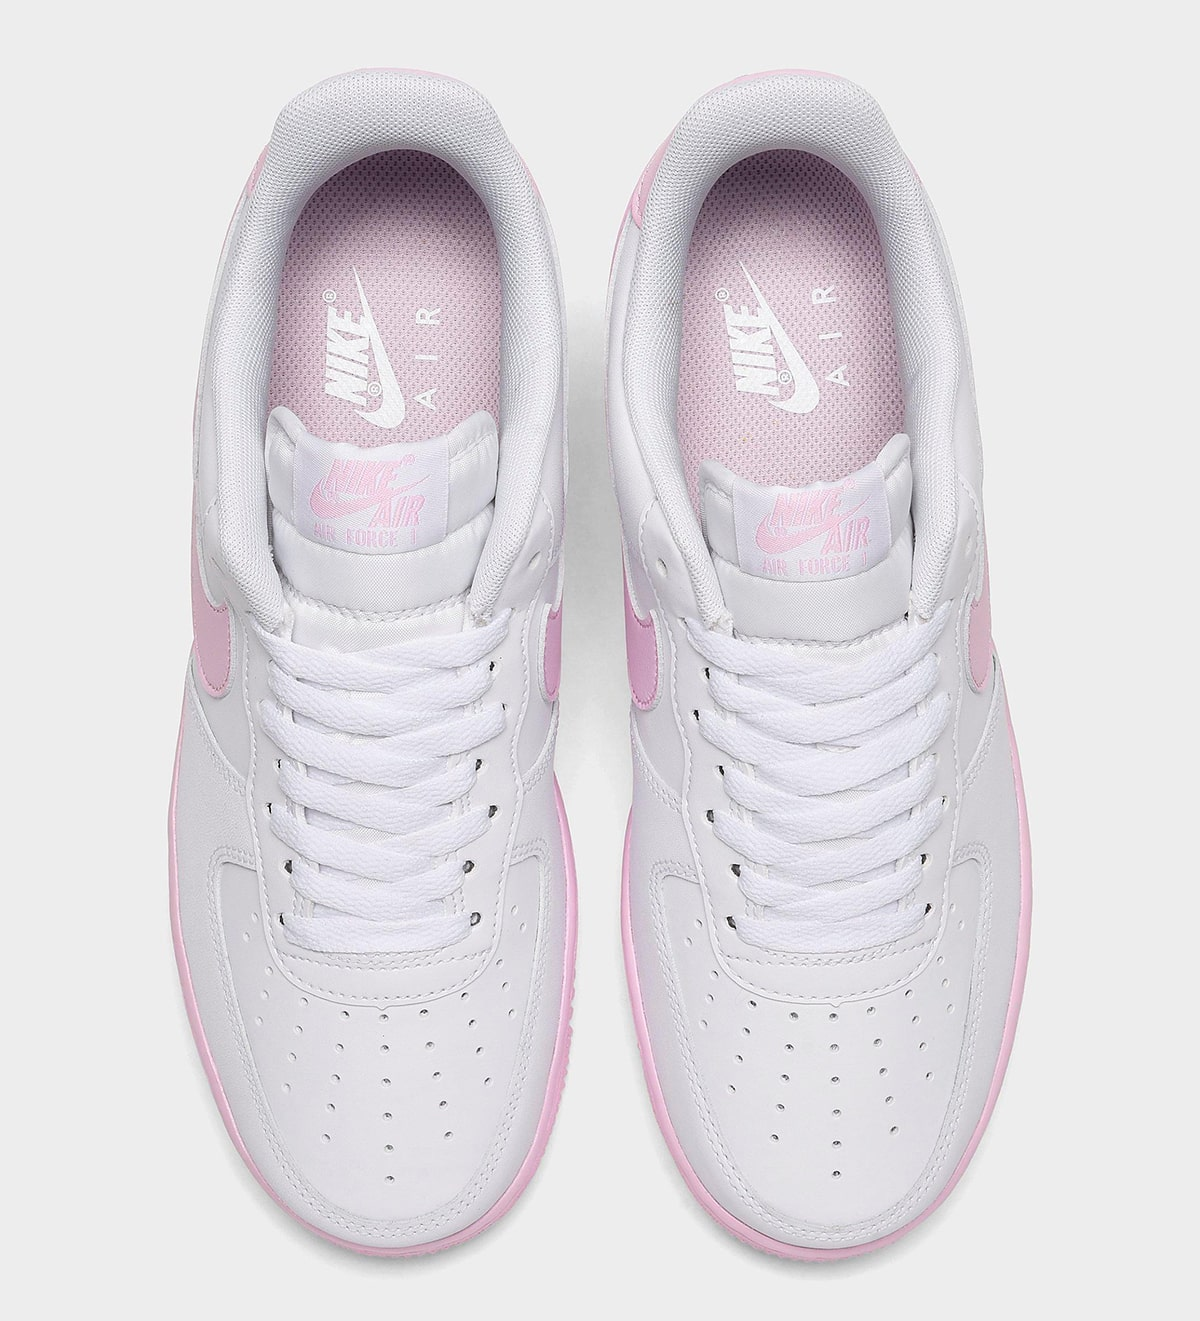 Now // Nike Air Force 1 Low \